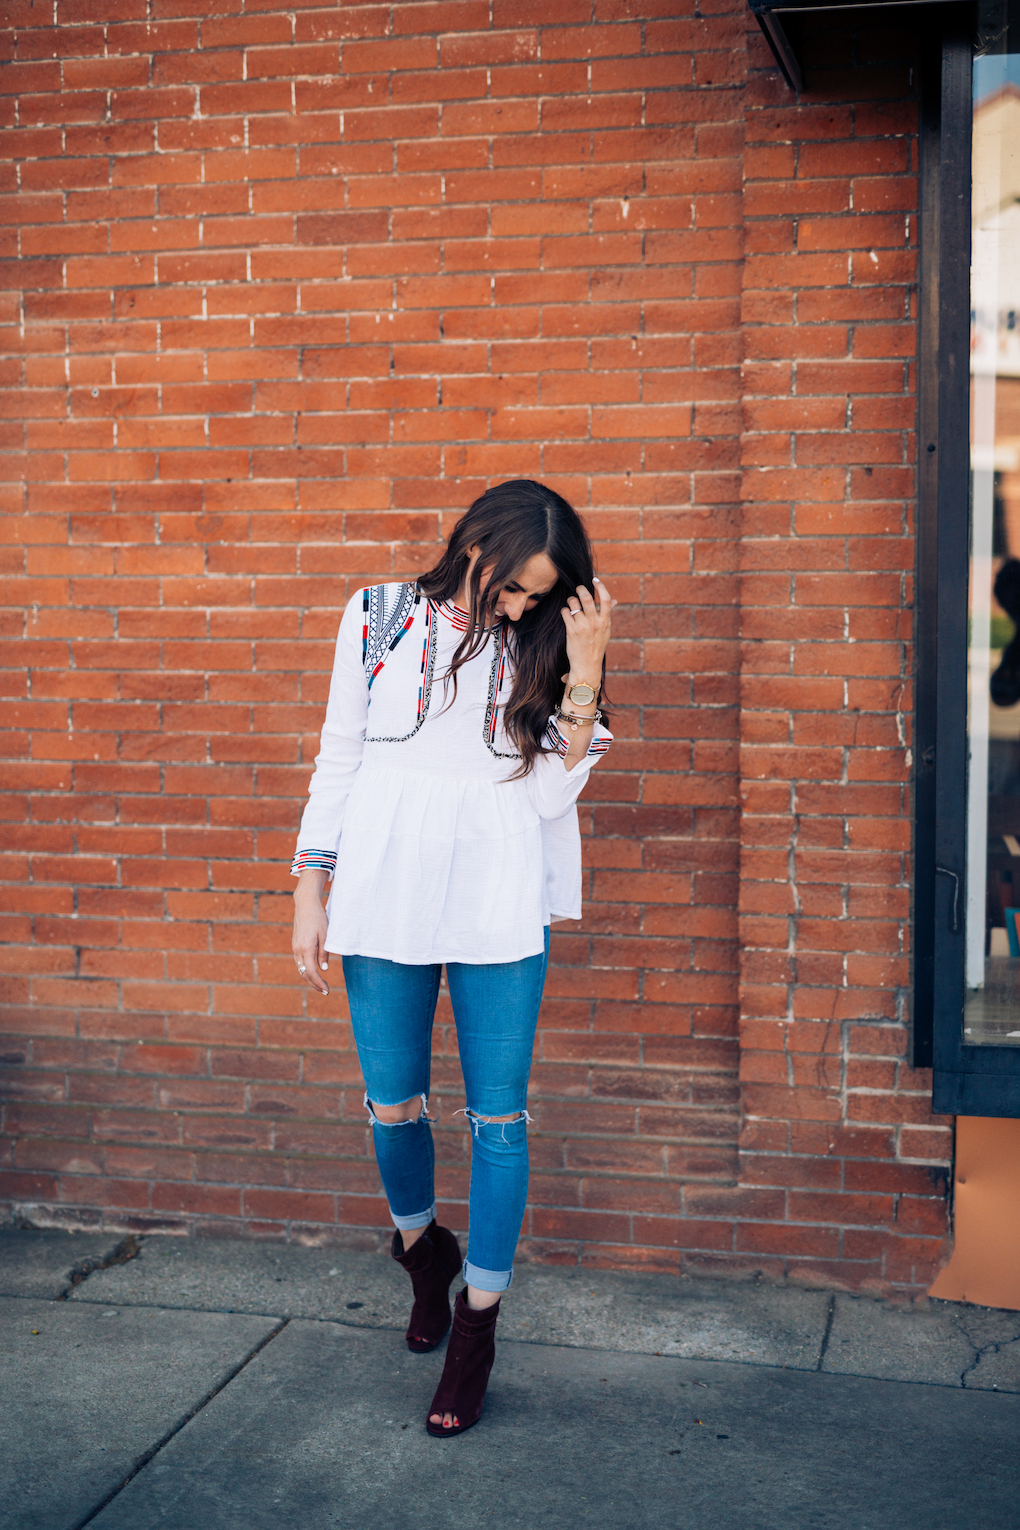 Girl in white peplum top with bright colored embroidery and skinny jeans with maroon booties in front of red wall